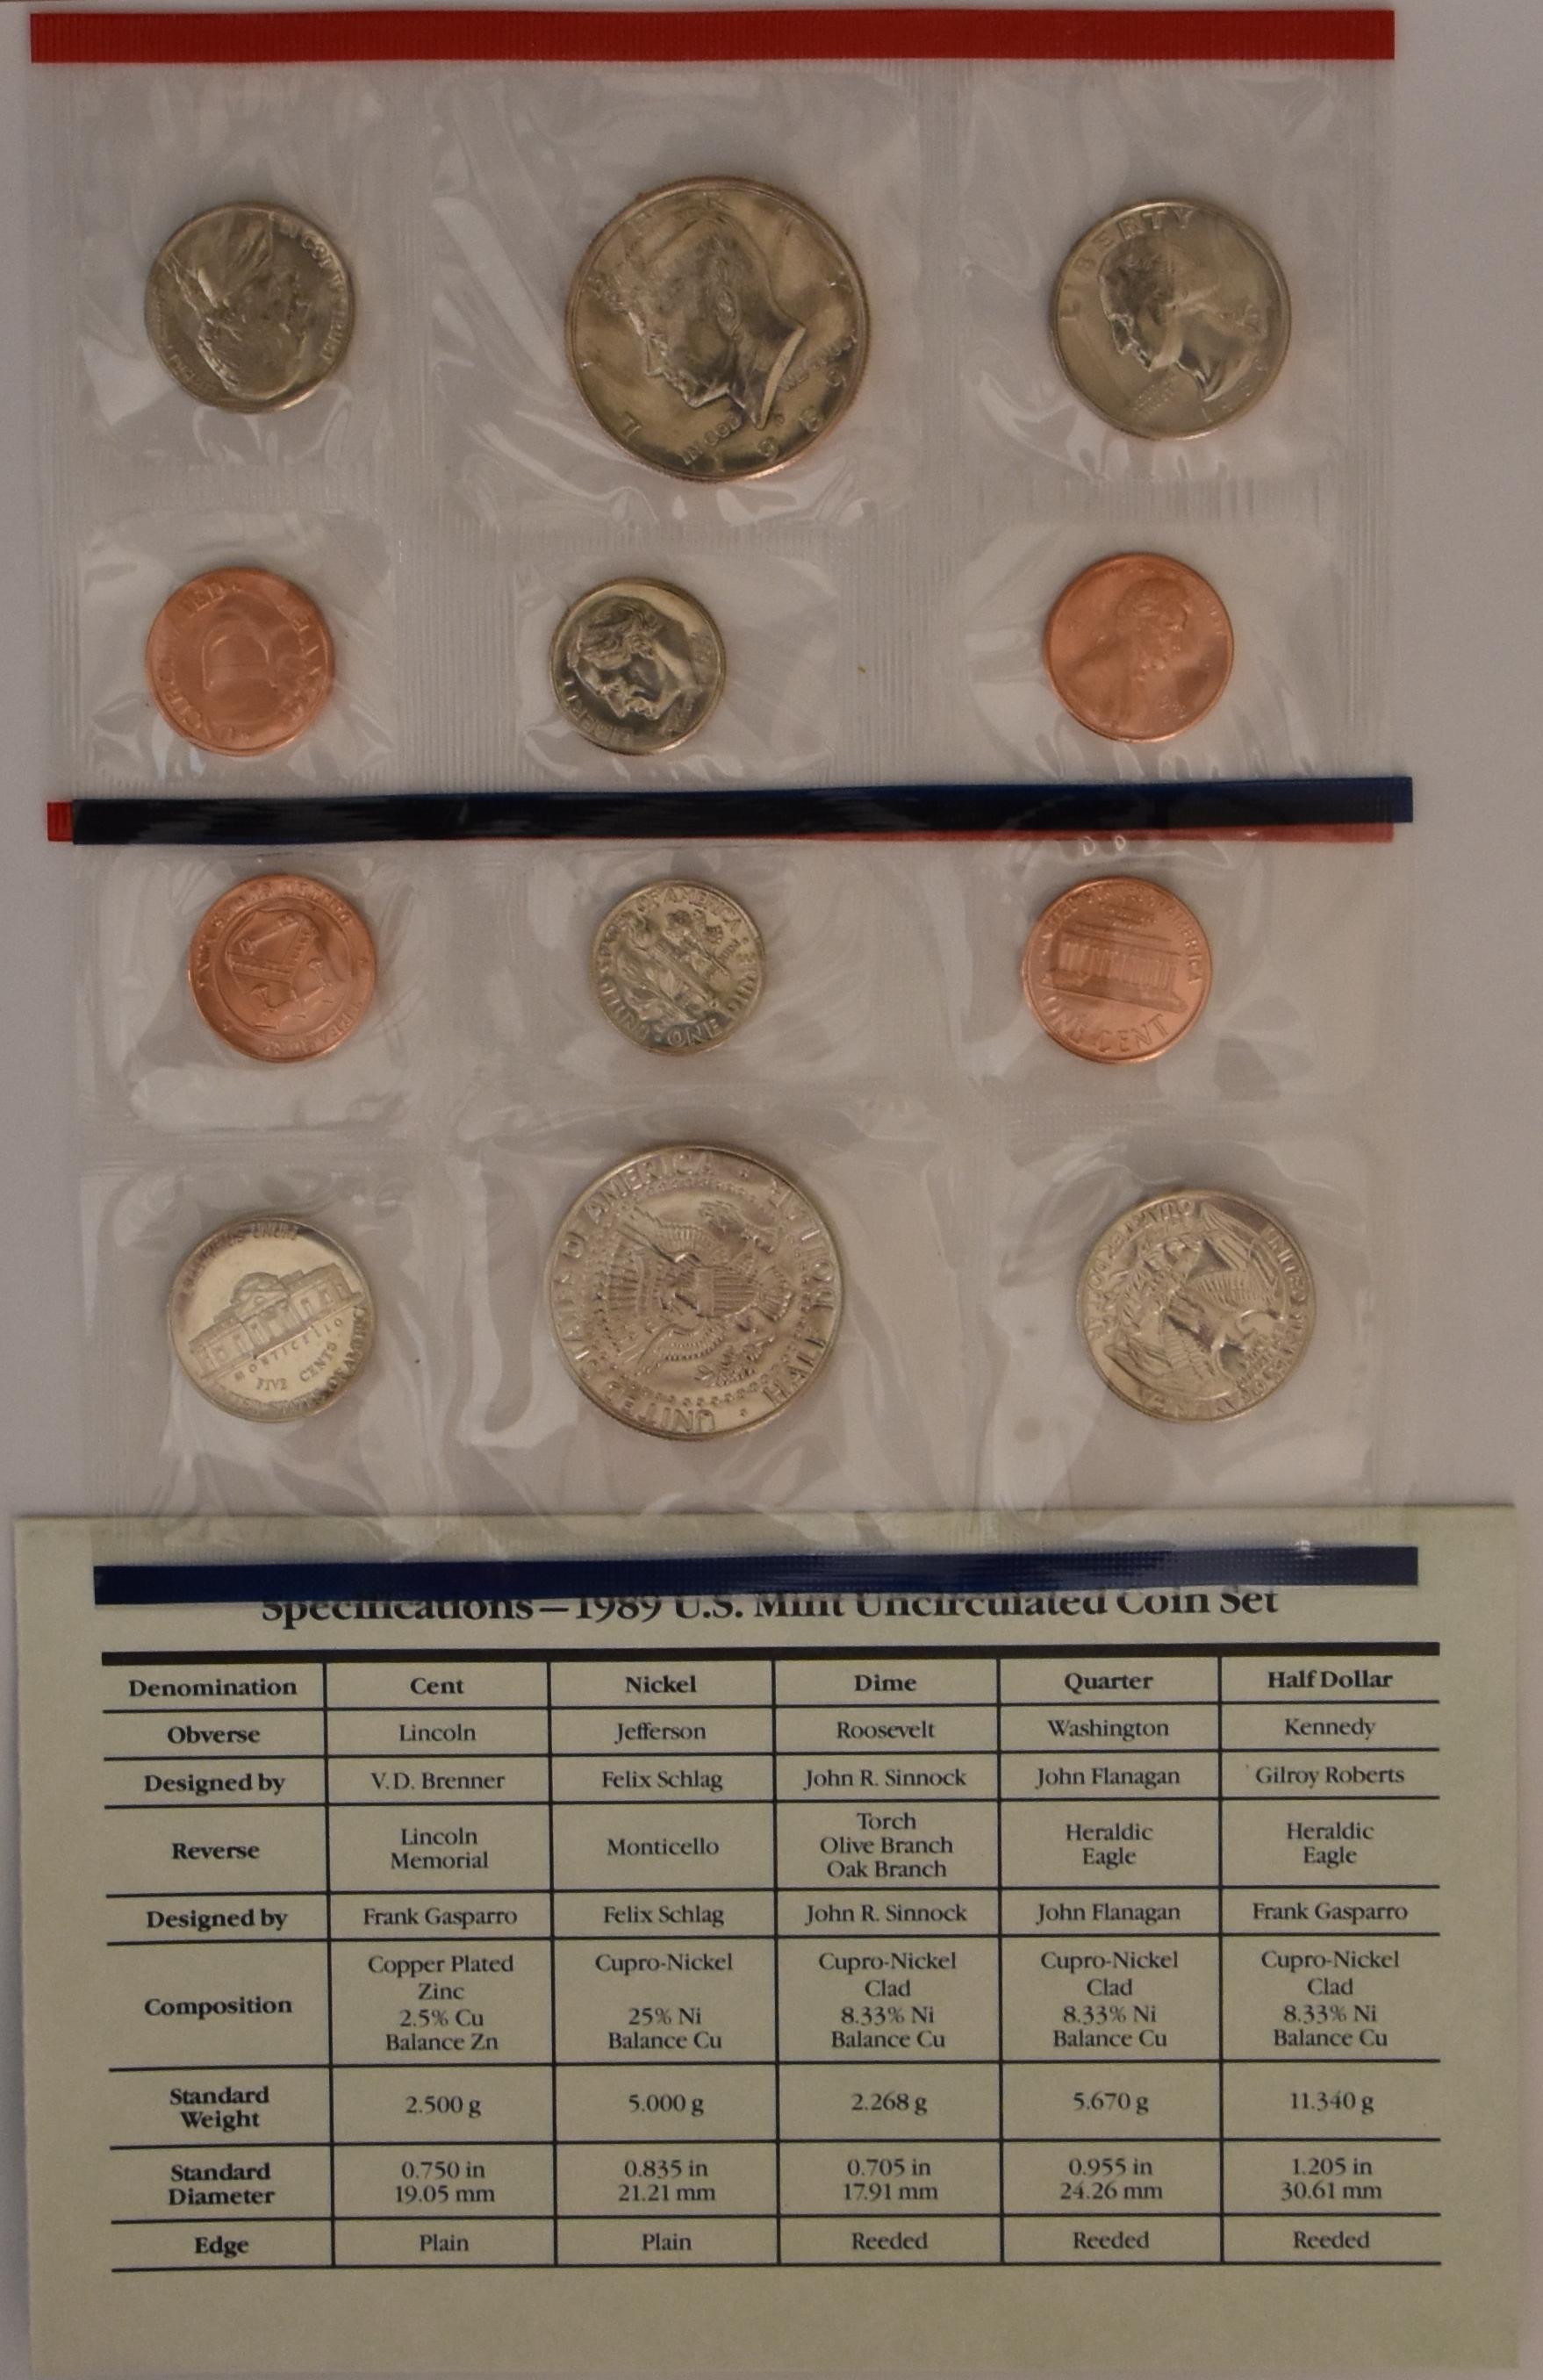 Mint Set Z Sold 1989 Us Mint Set 10 Uncirculated Coins 5 From Philadelphia 5 From Denver